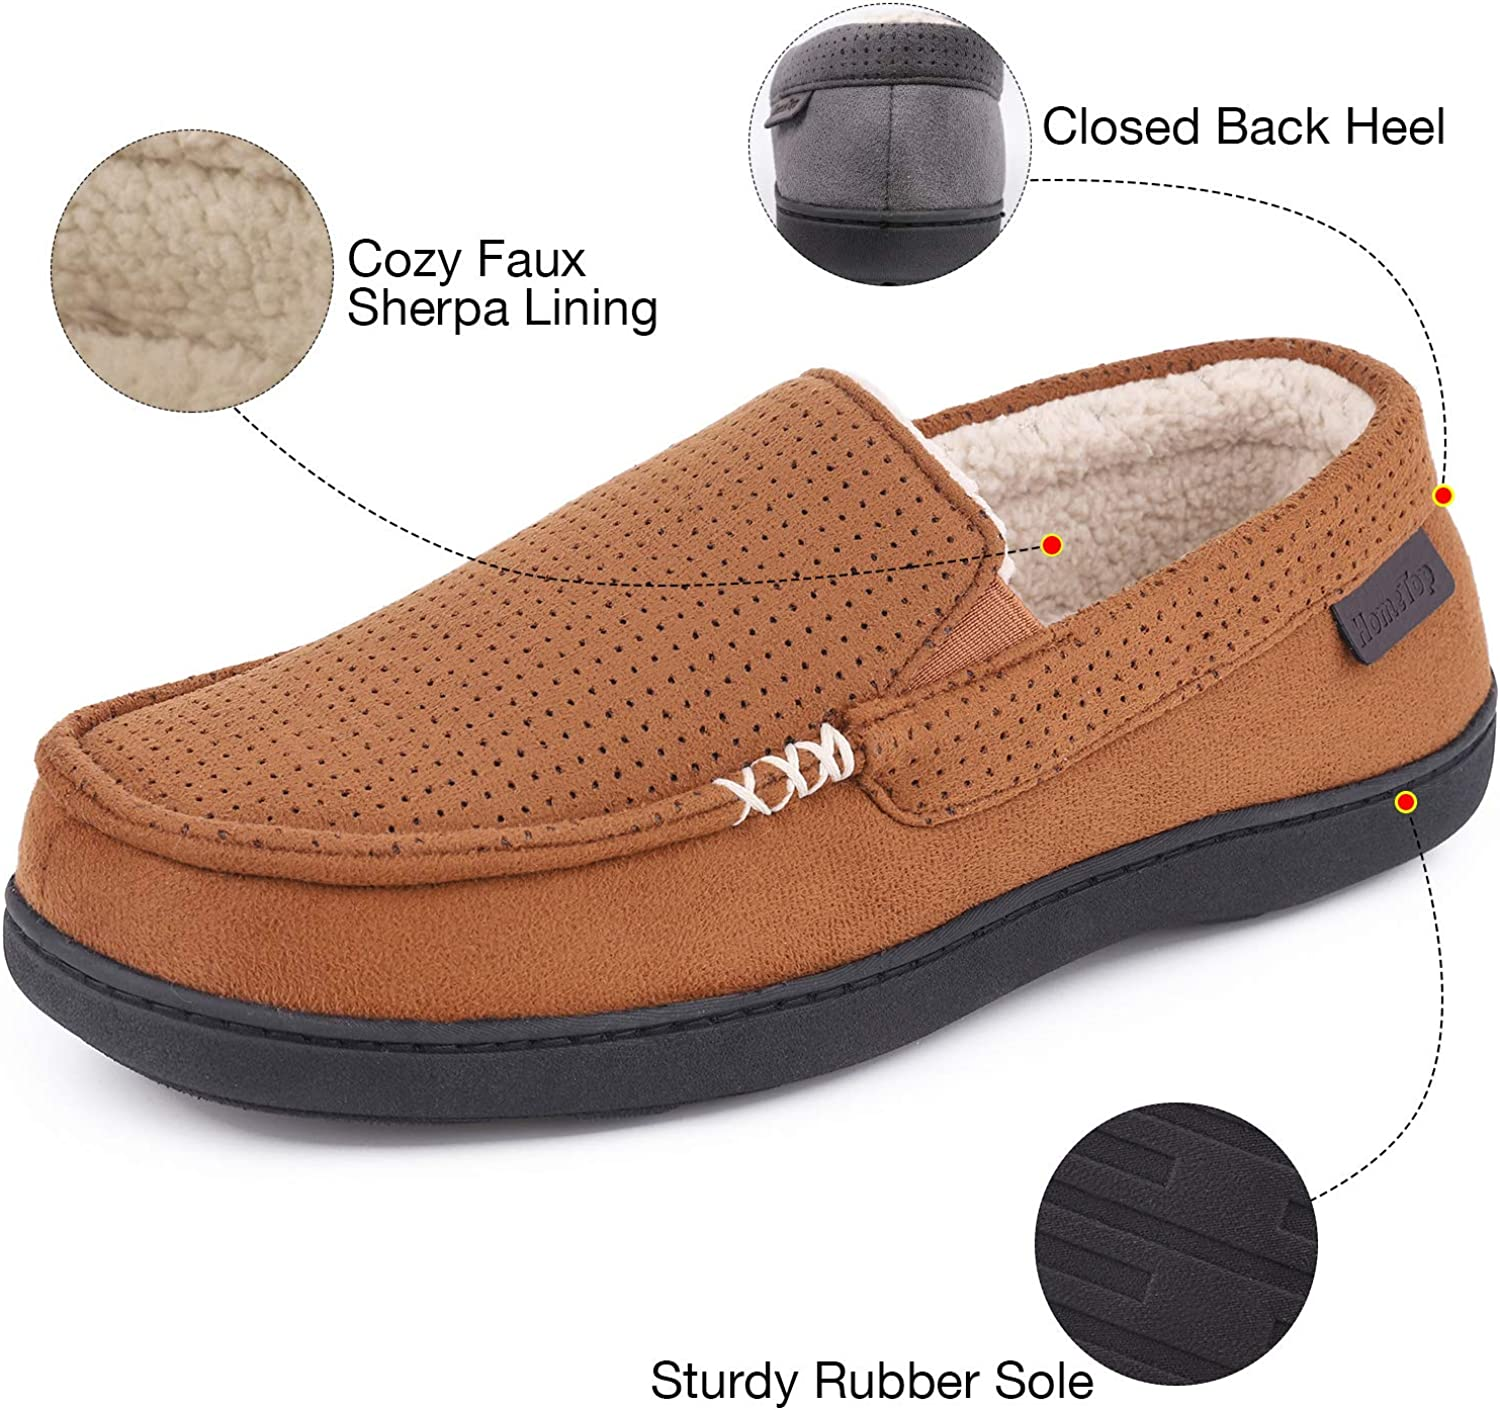 Mens Comfy Suede Memory Foam Moccasin Slippers Warm Sherpa Lining House Shoes with Anti-Skid Rubber Sole